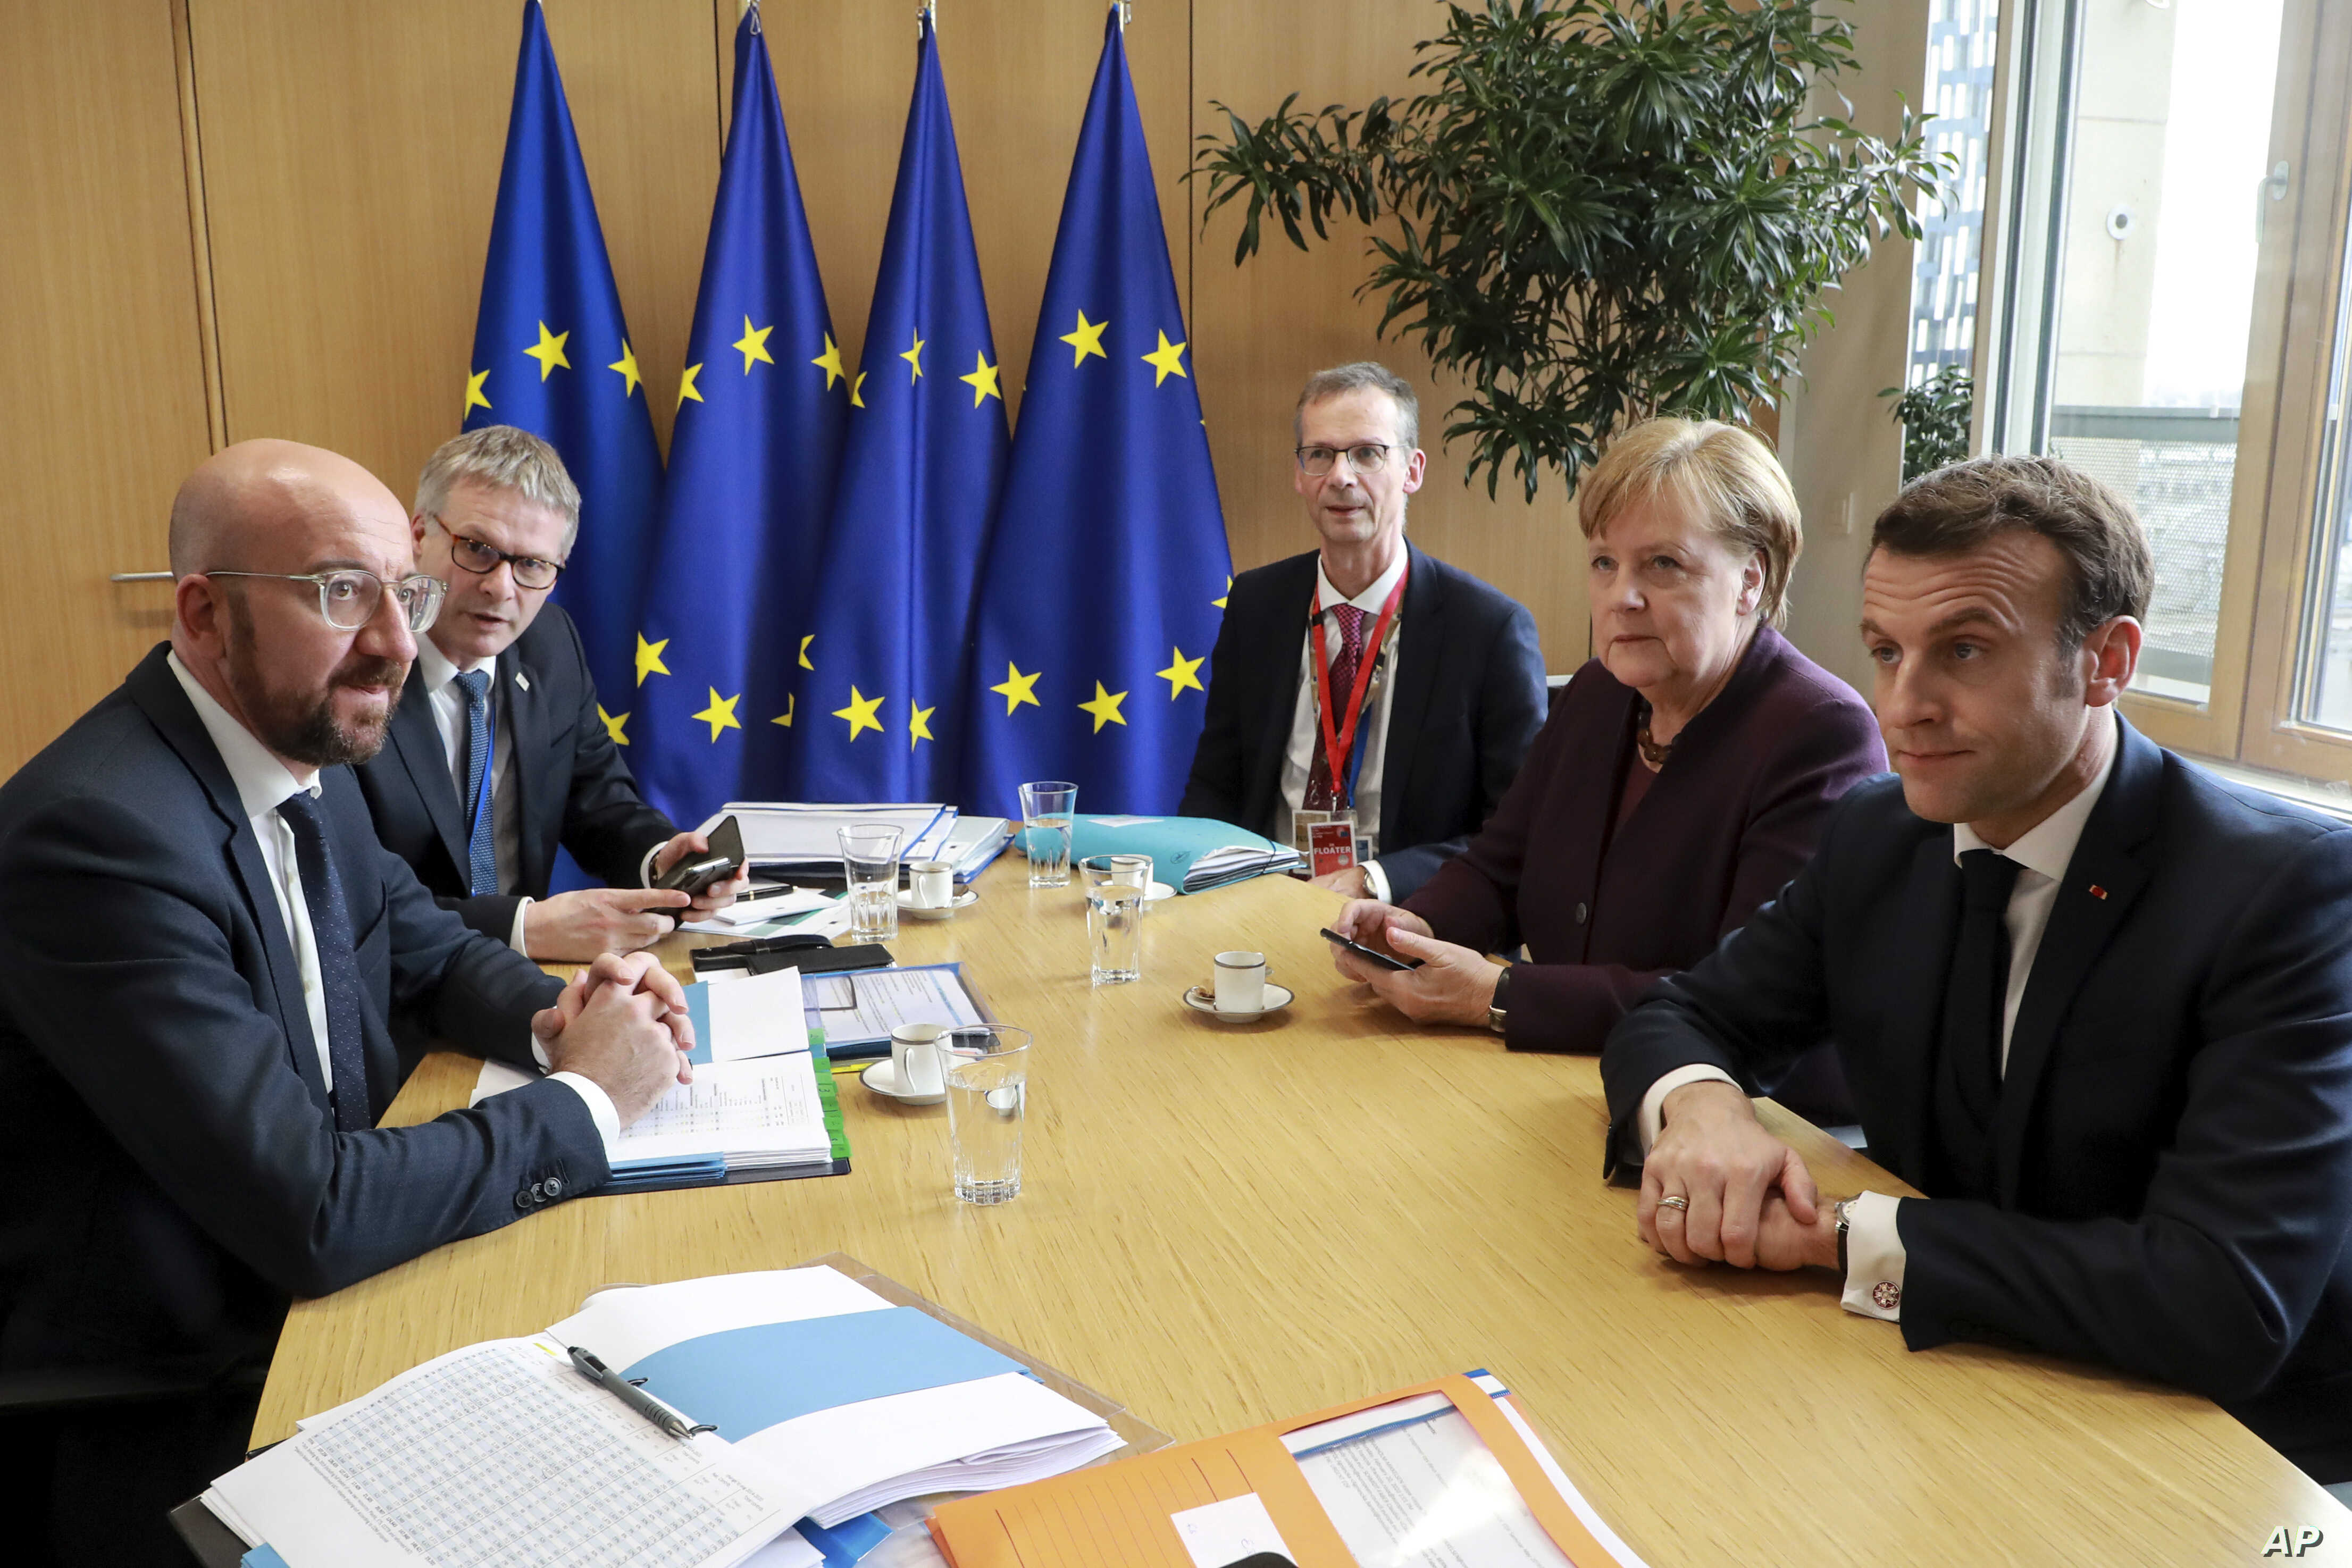 European Union in chaos over $81-B budget loss